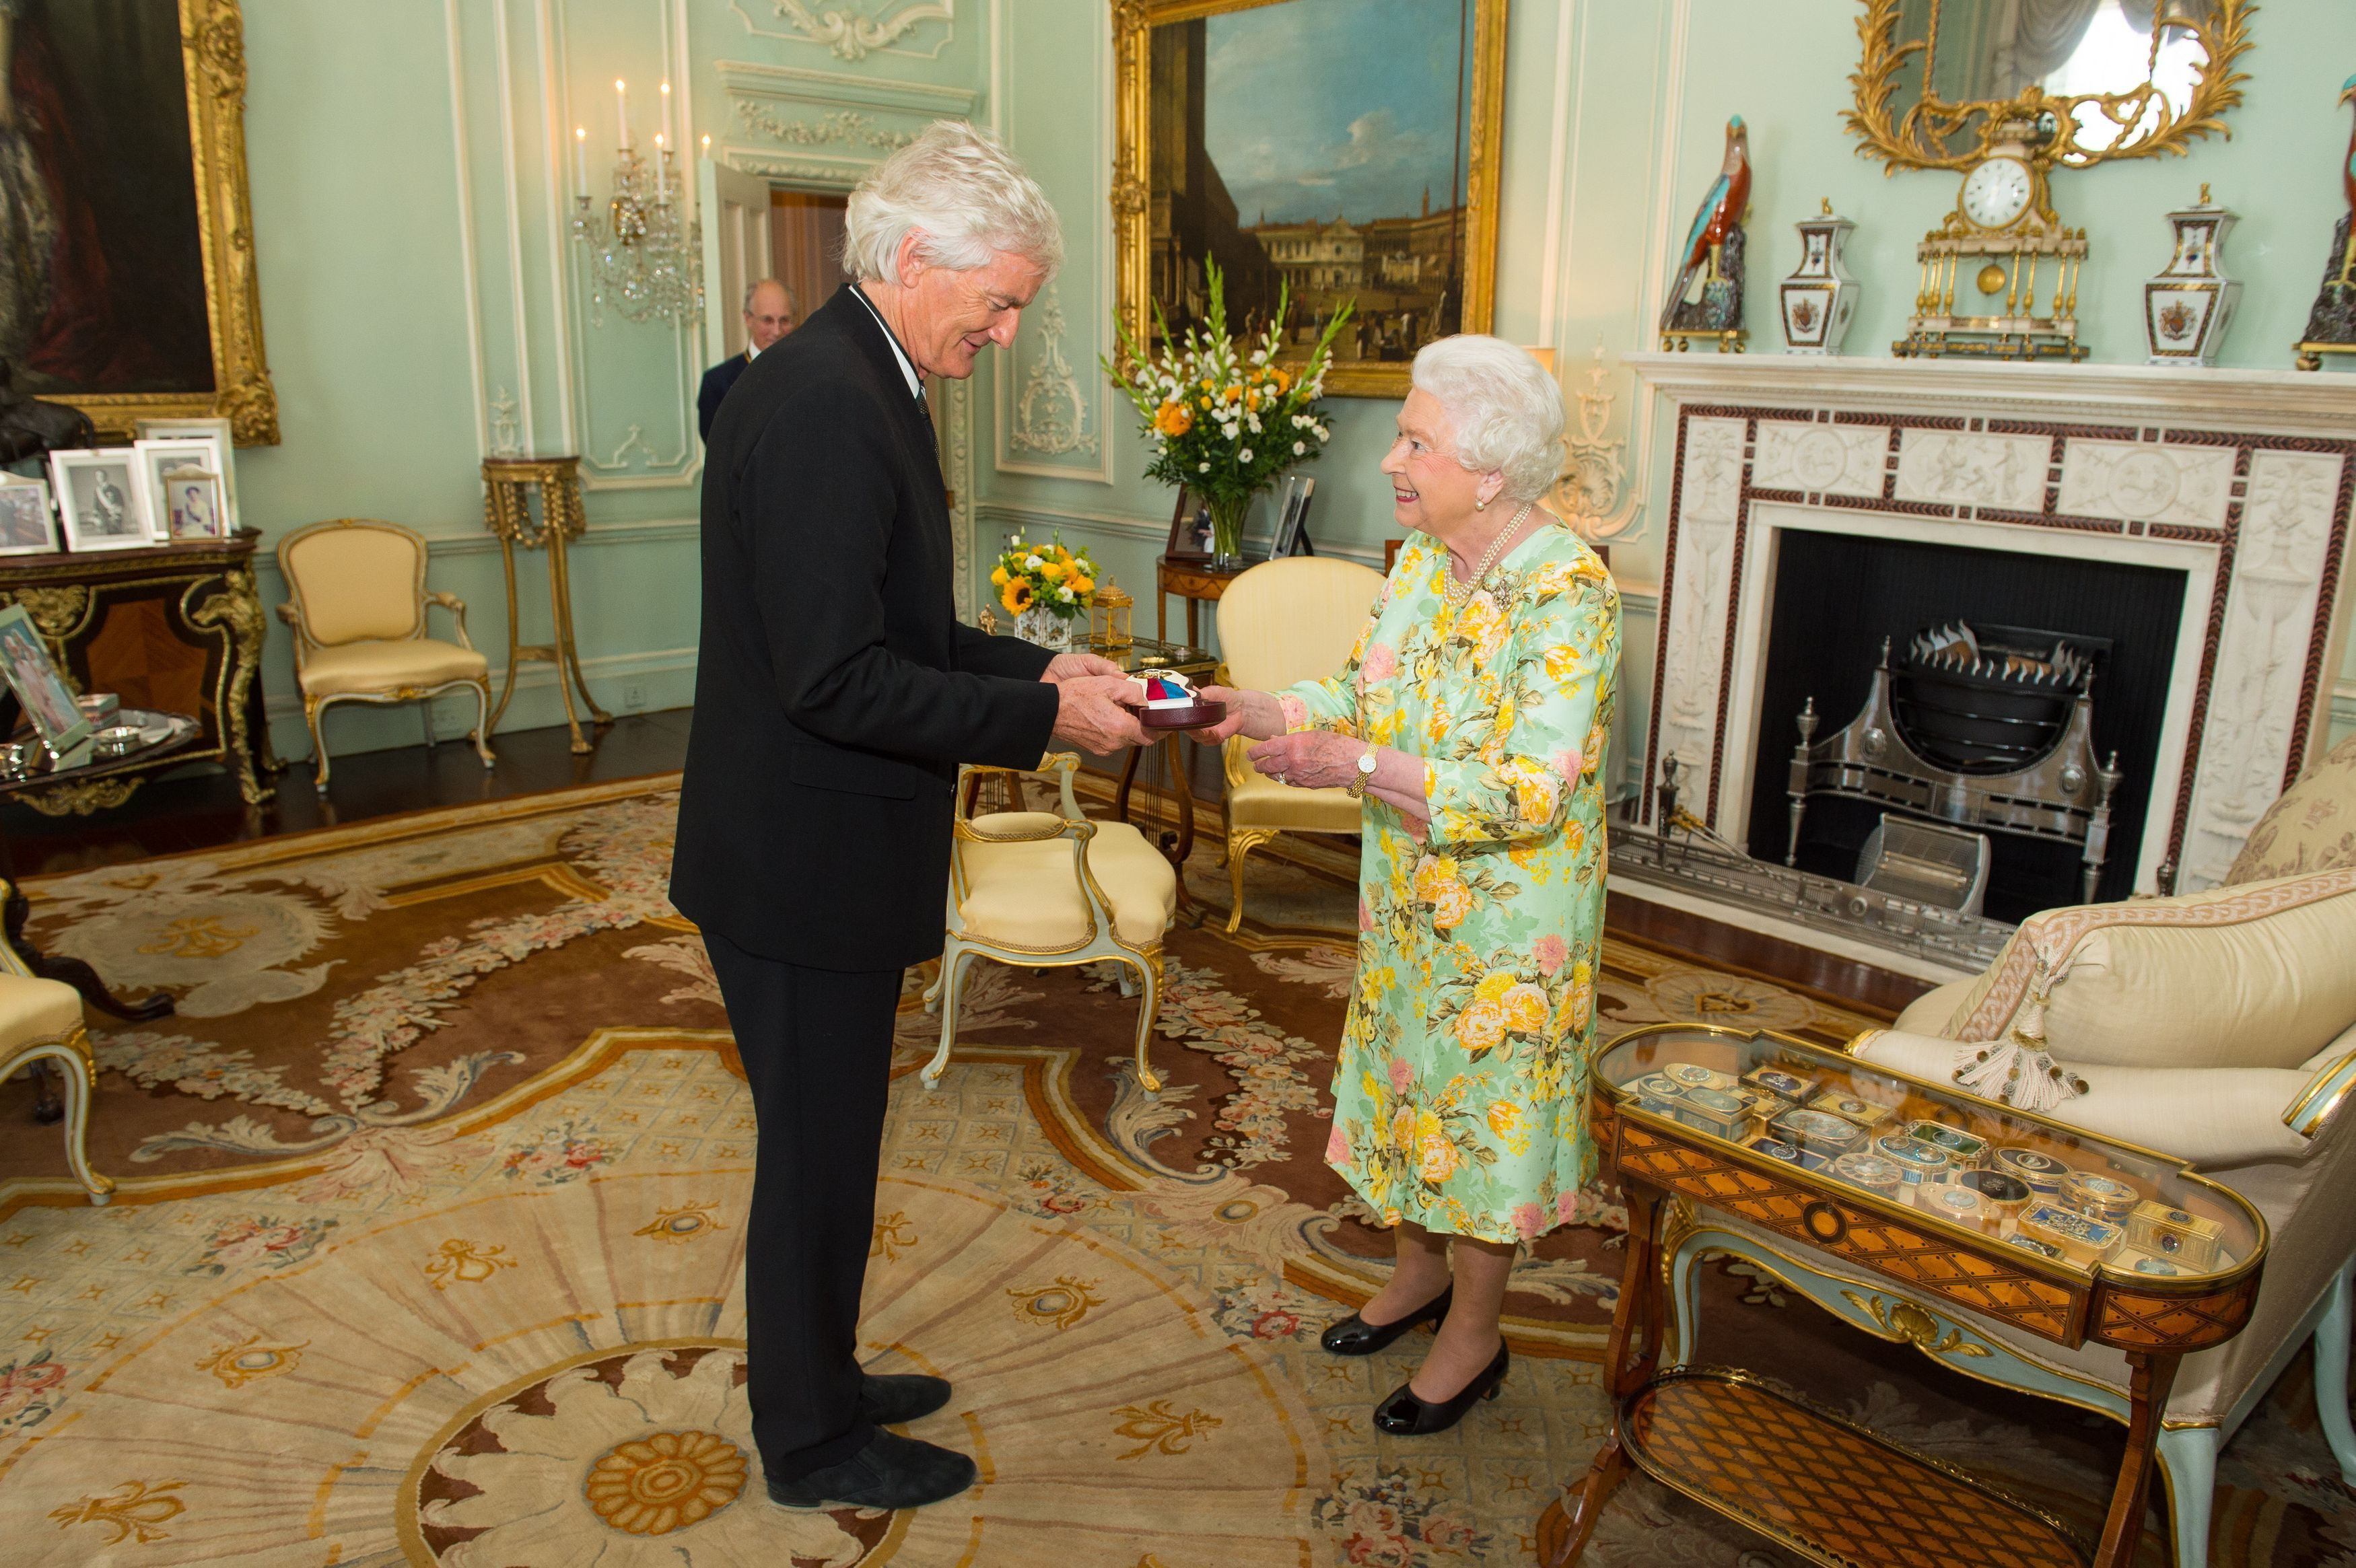 Queen Elizabeth II presents Sir James Dyson with the insignia with the insignia of members of the Order of Merit, during a private audience at Buckingham Palace, London.